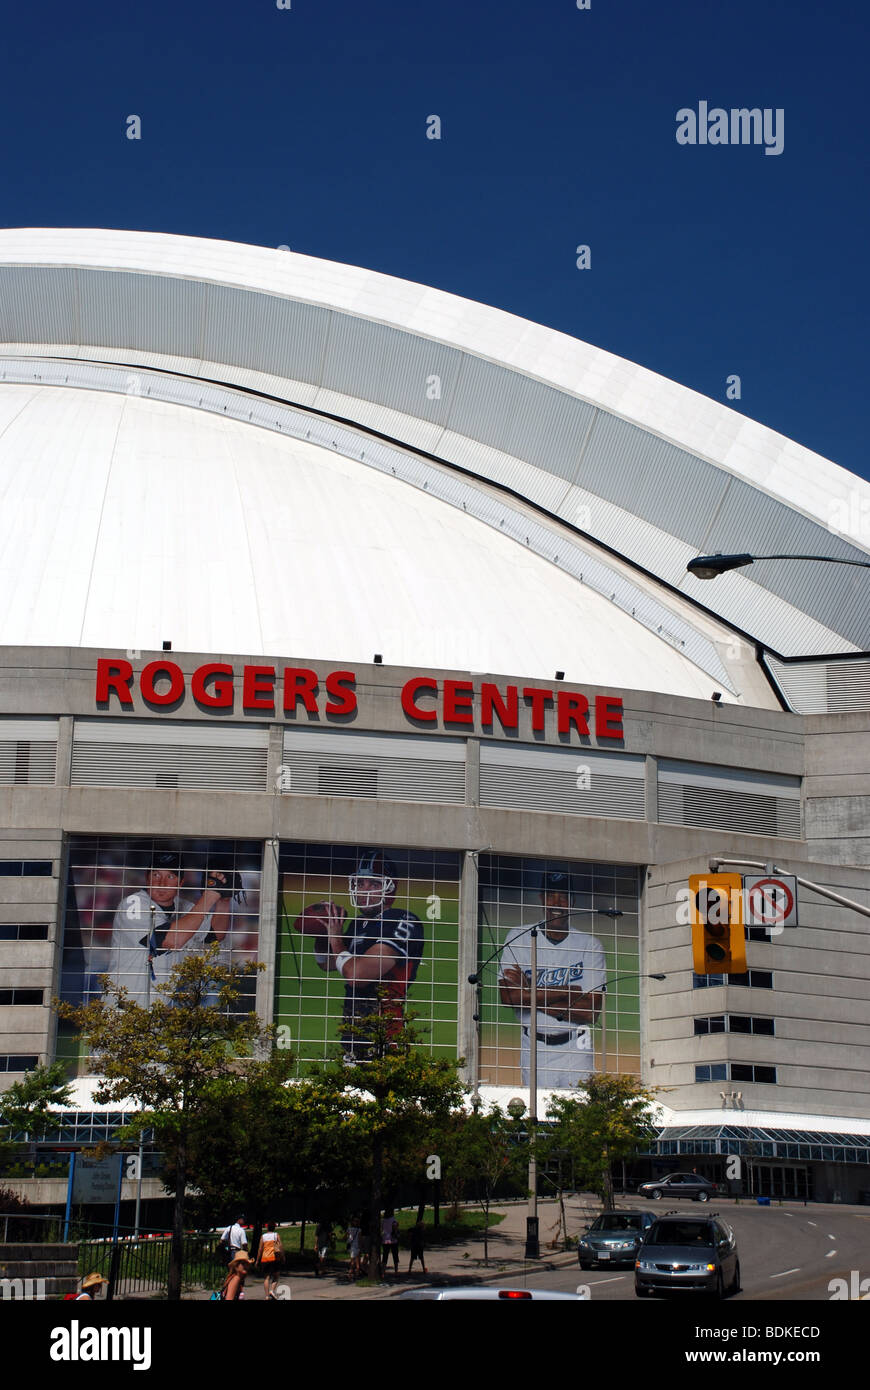 Rogers Centre in Toronto, Canada - Stock Image